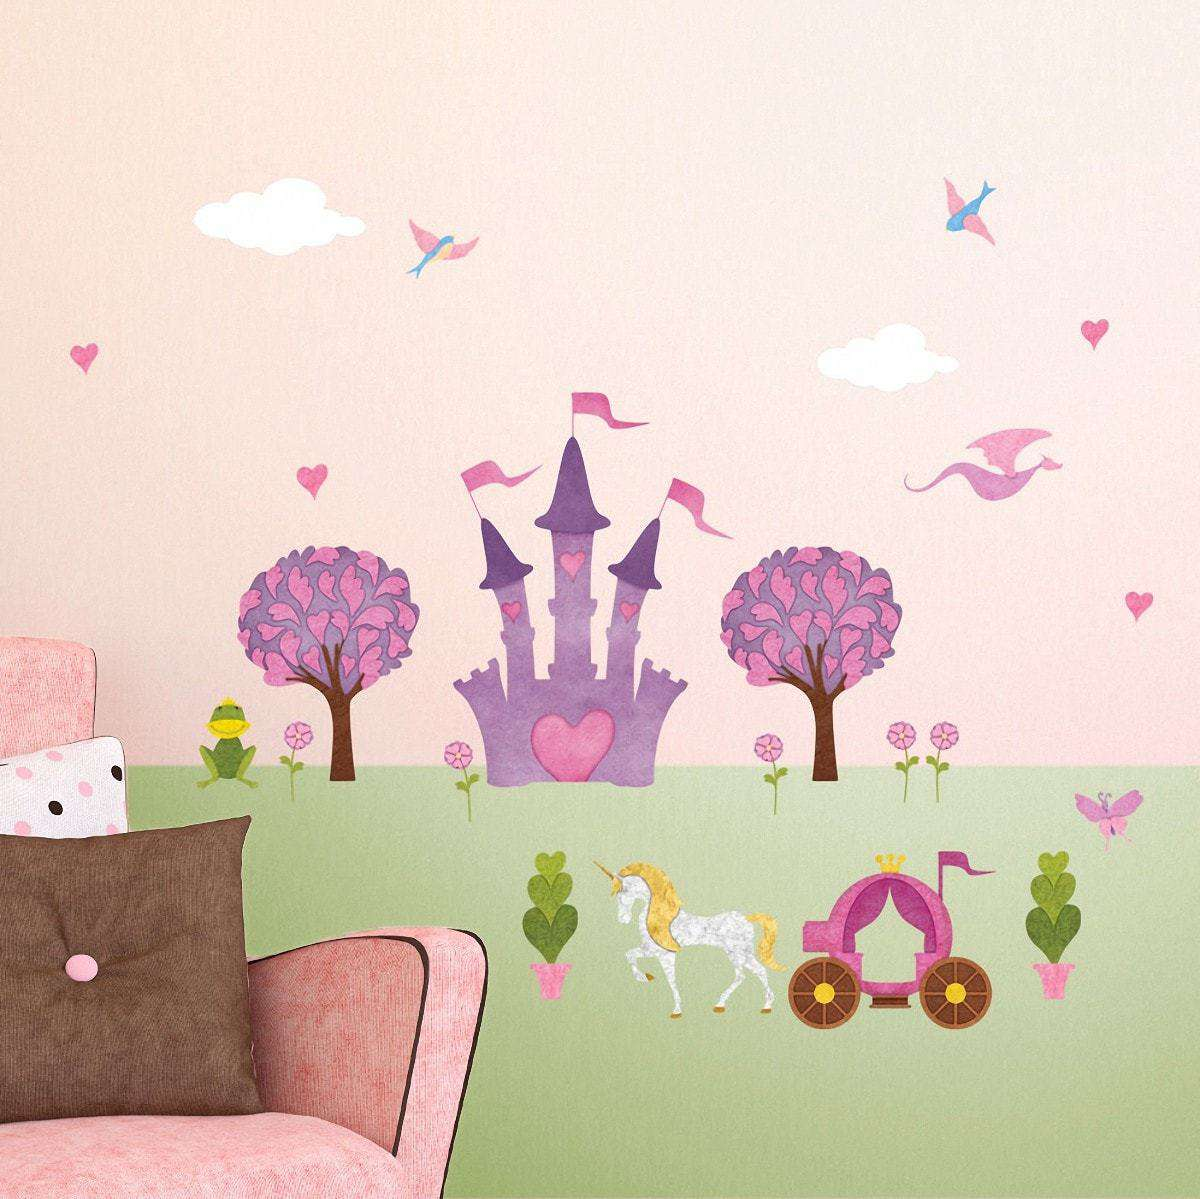 Princess wall stickers peel stick decals for princess wall princess wall sticker peel stick decals for princess wall mural with large princess castle amipublicfo Gallery